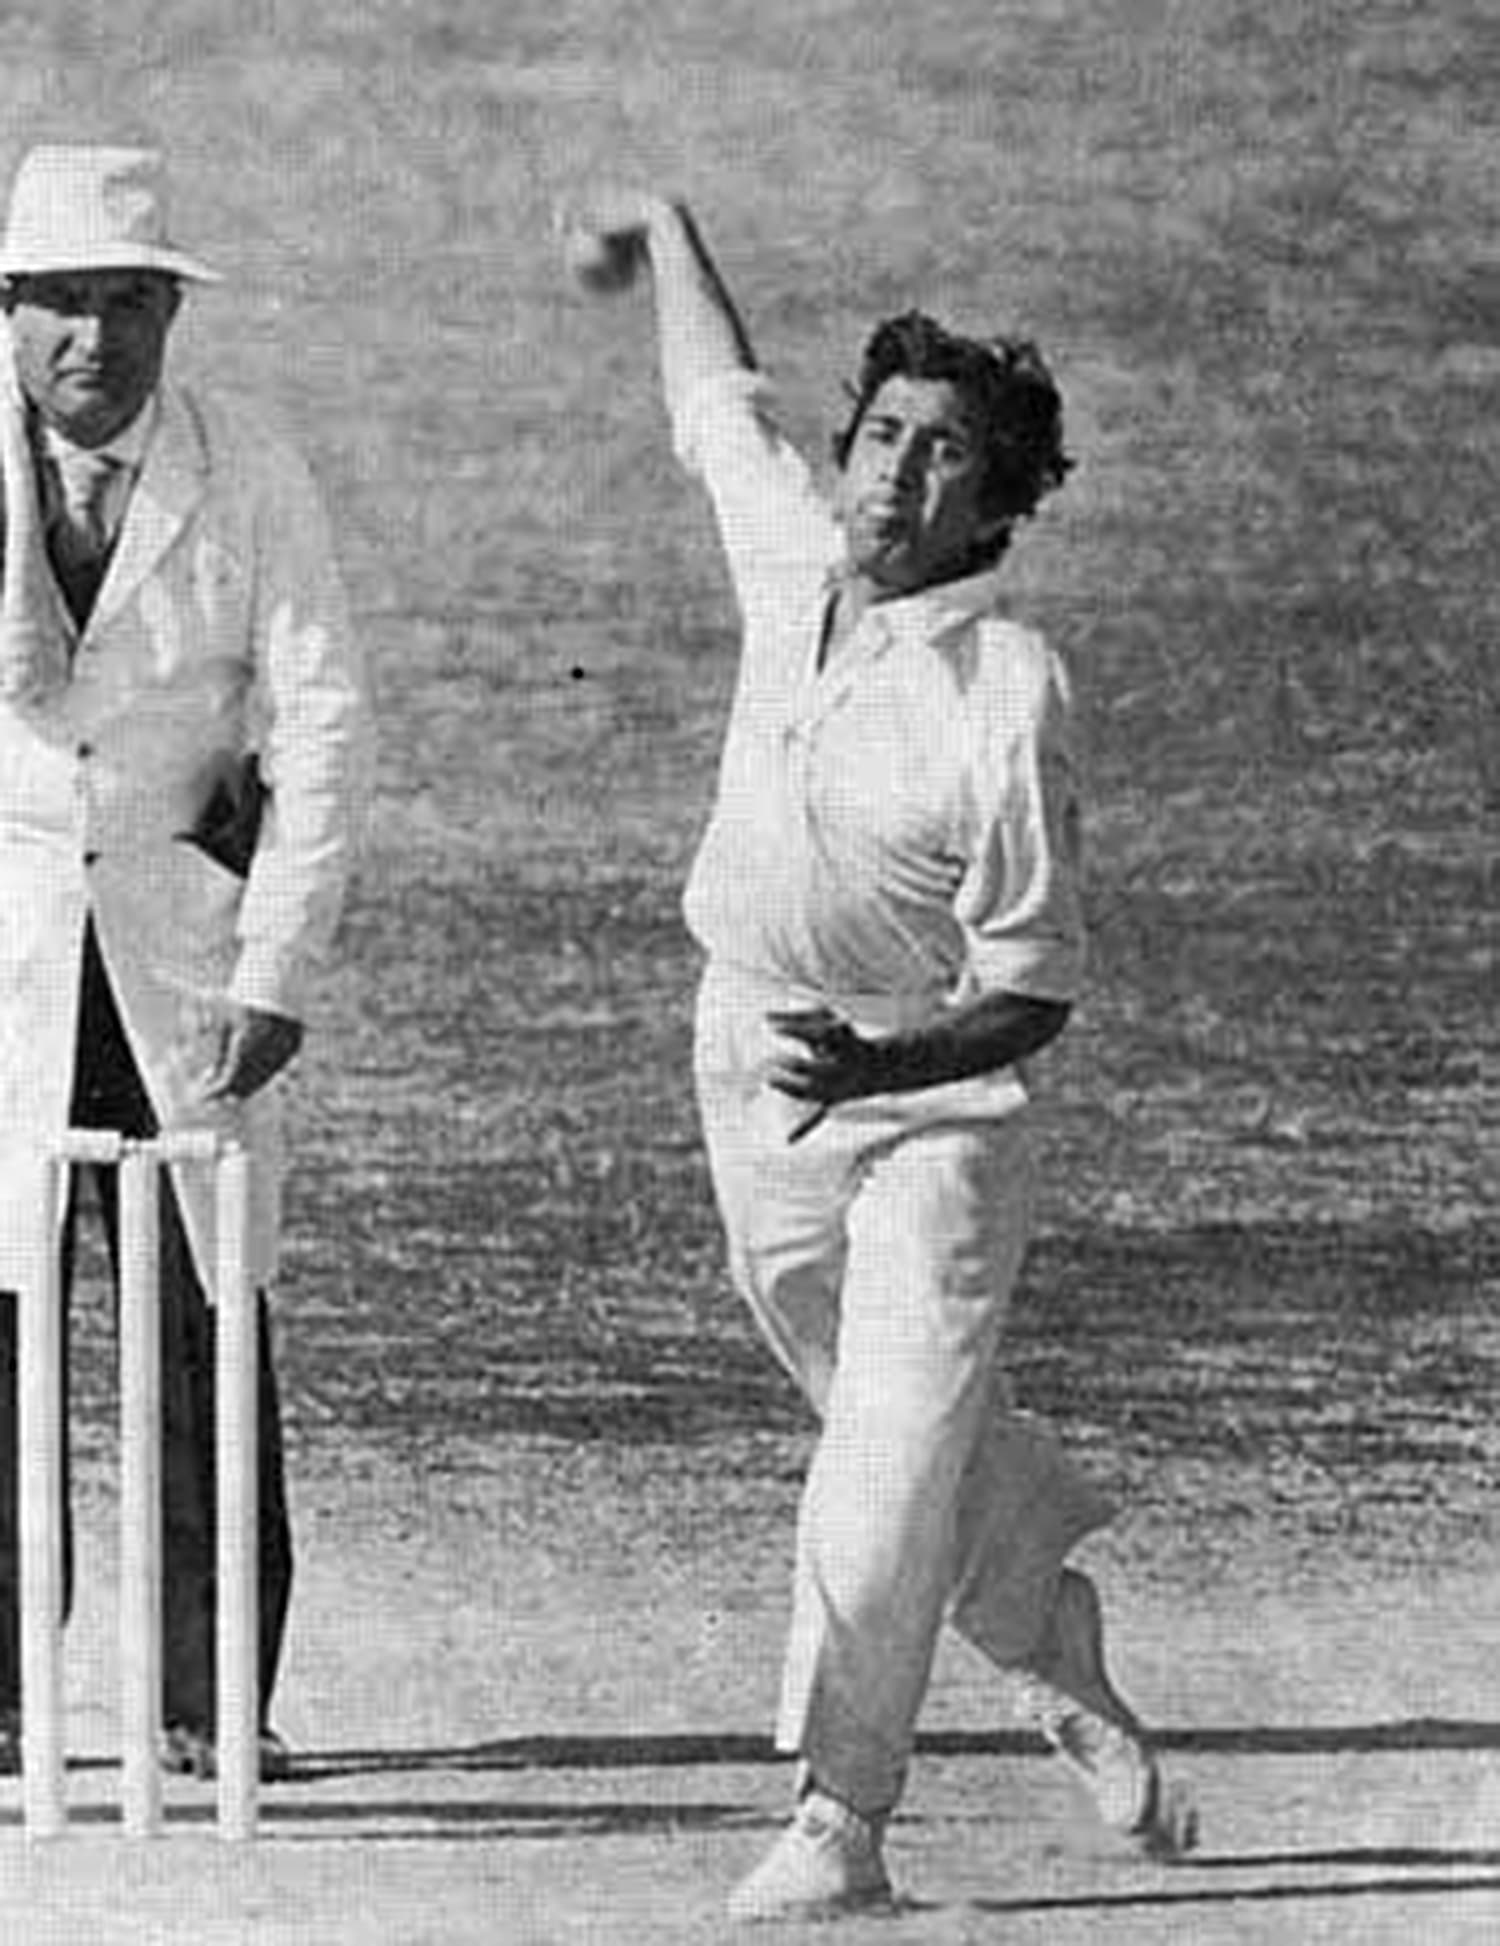 1977: Pakistan ace leg-spinner, Abdul Qadir, bowling against England during a 1977 Test at Niaz Stadium. (Pic: The Cricketer Pakistan)